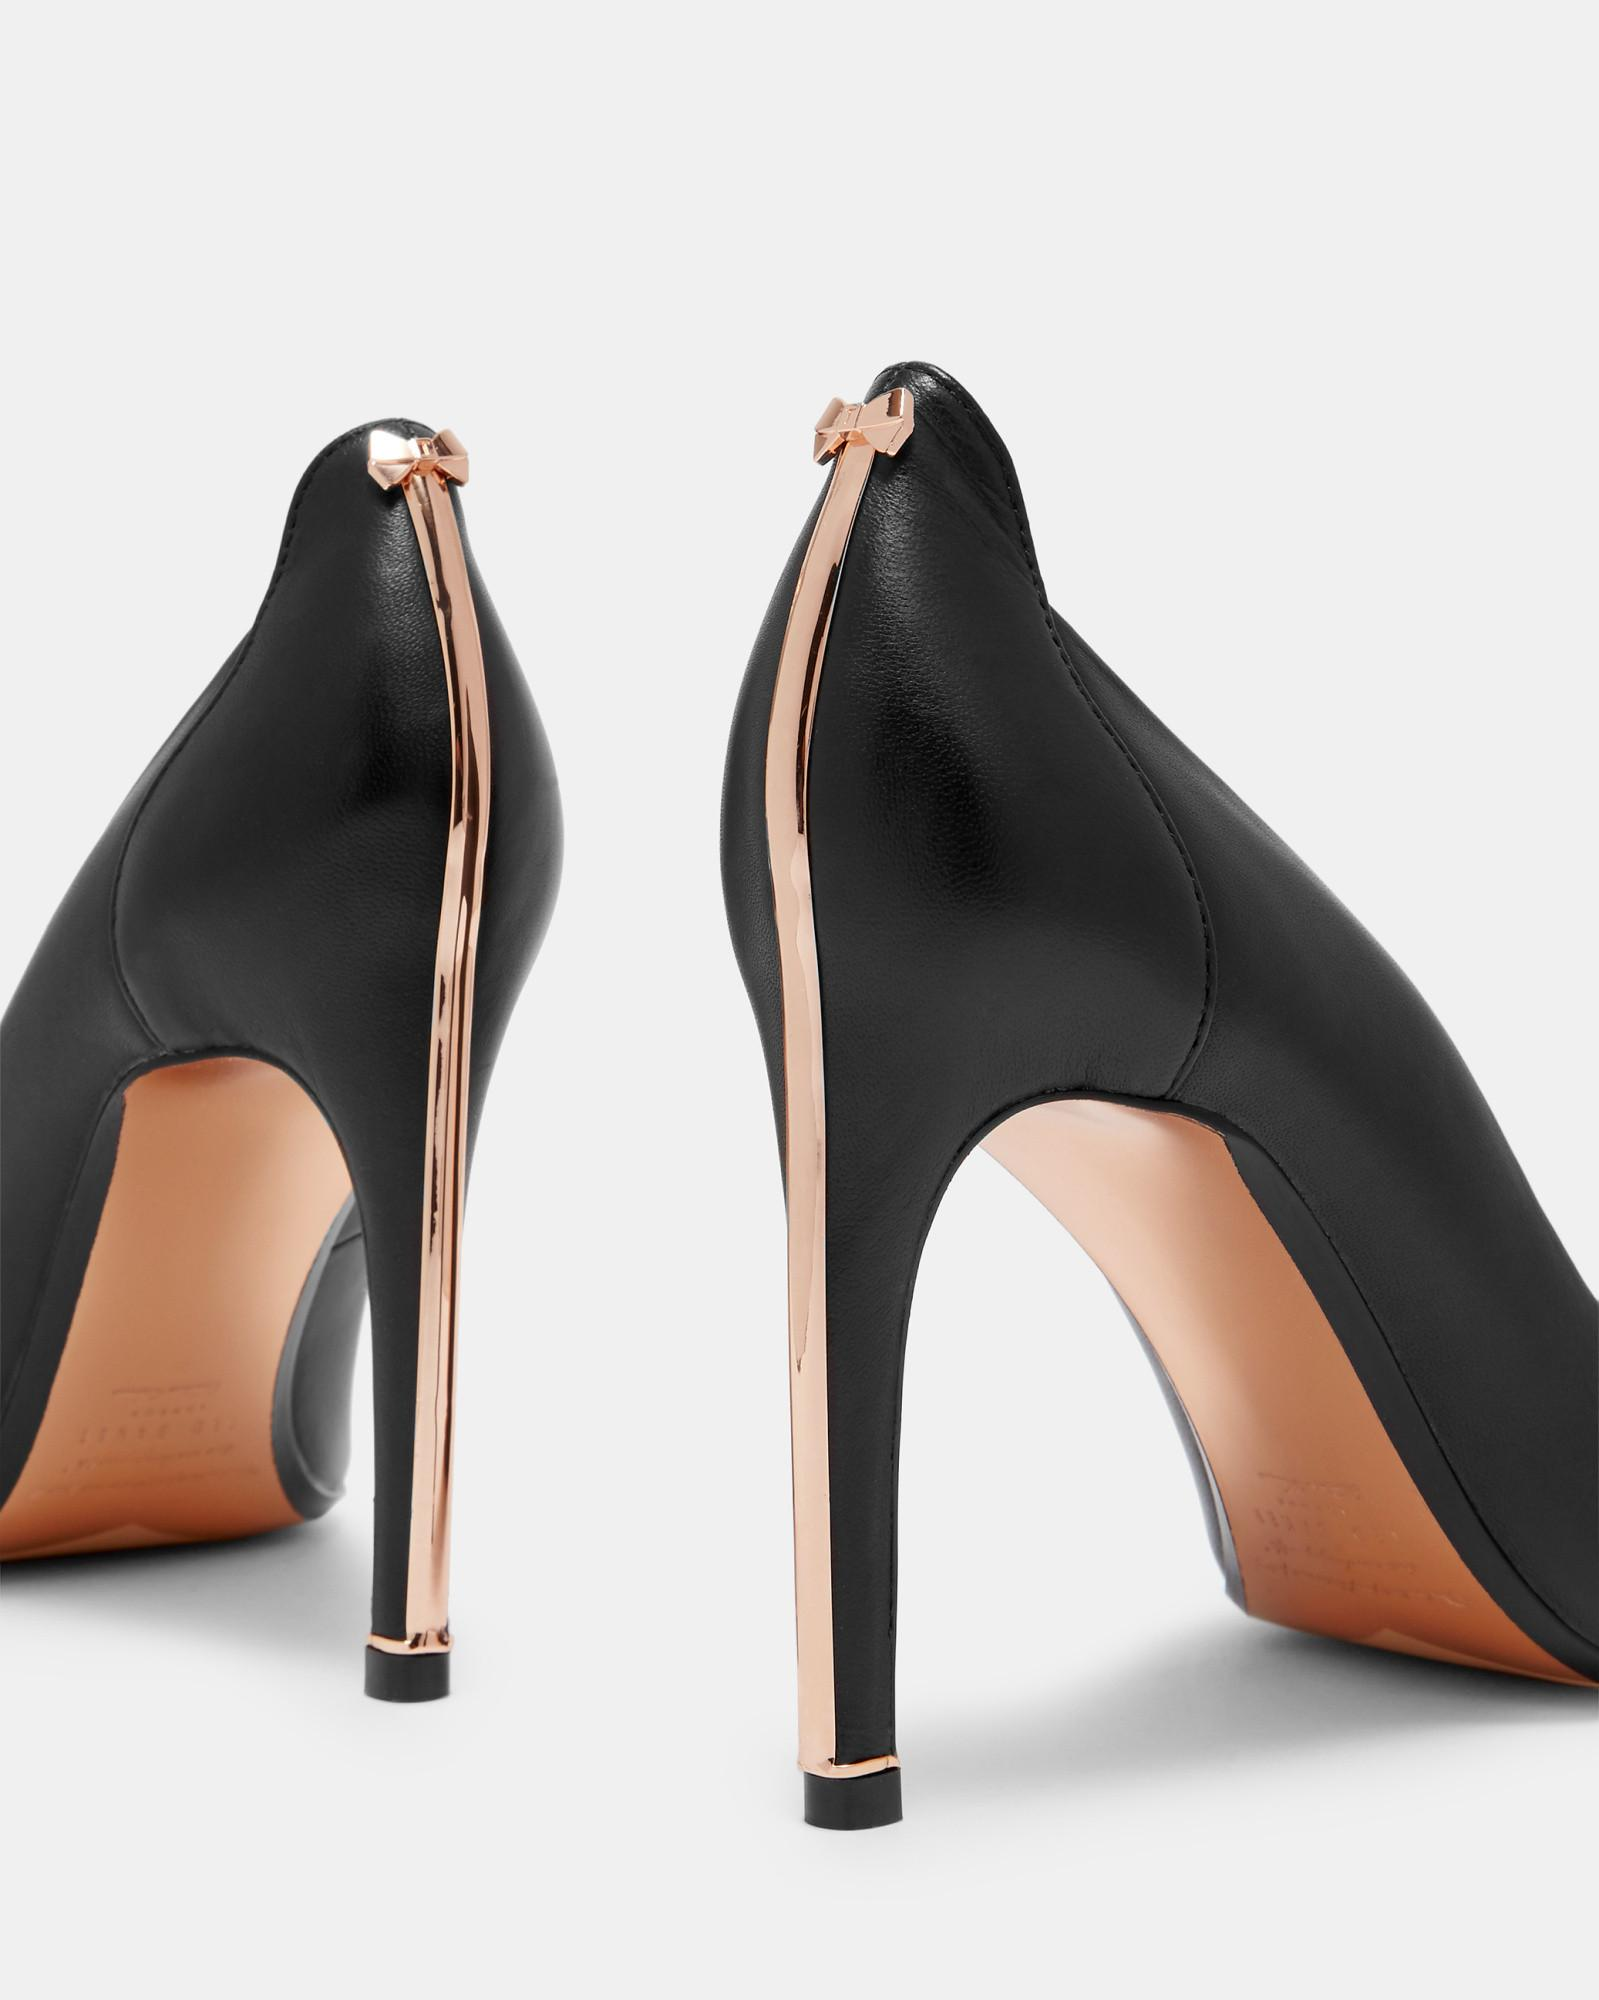 c35d861bfdd78d Ted Baker Bow Detail Heel Trim Courts in Black - Lyst